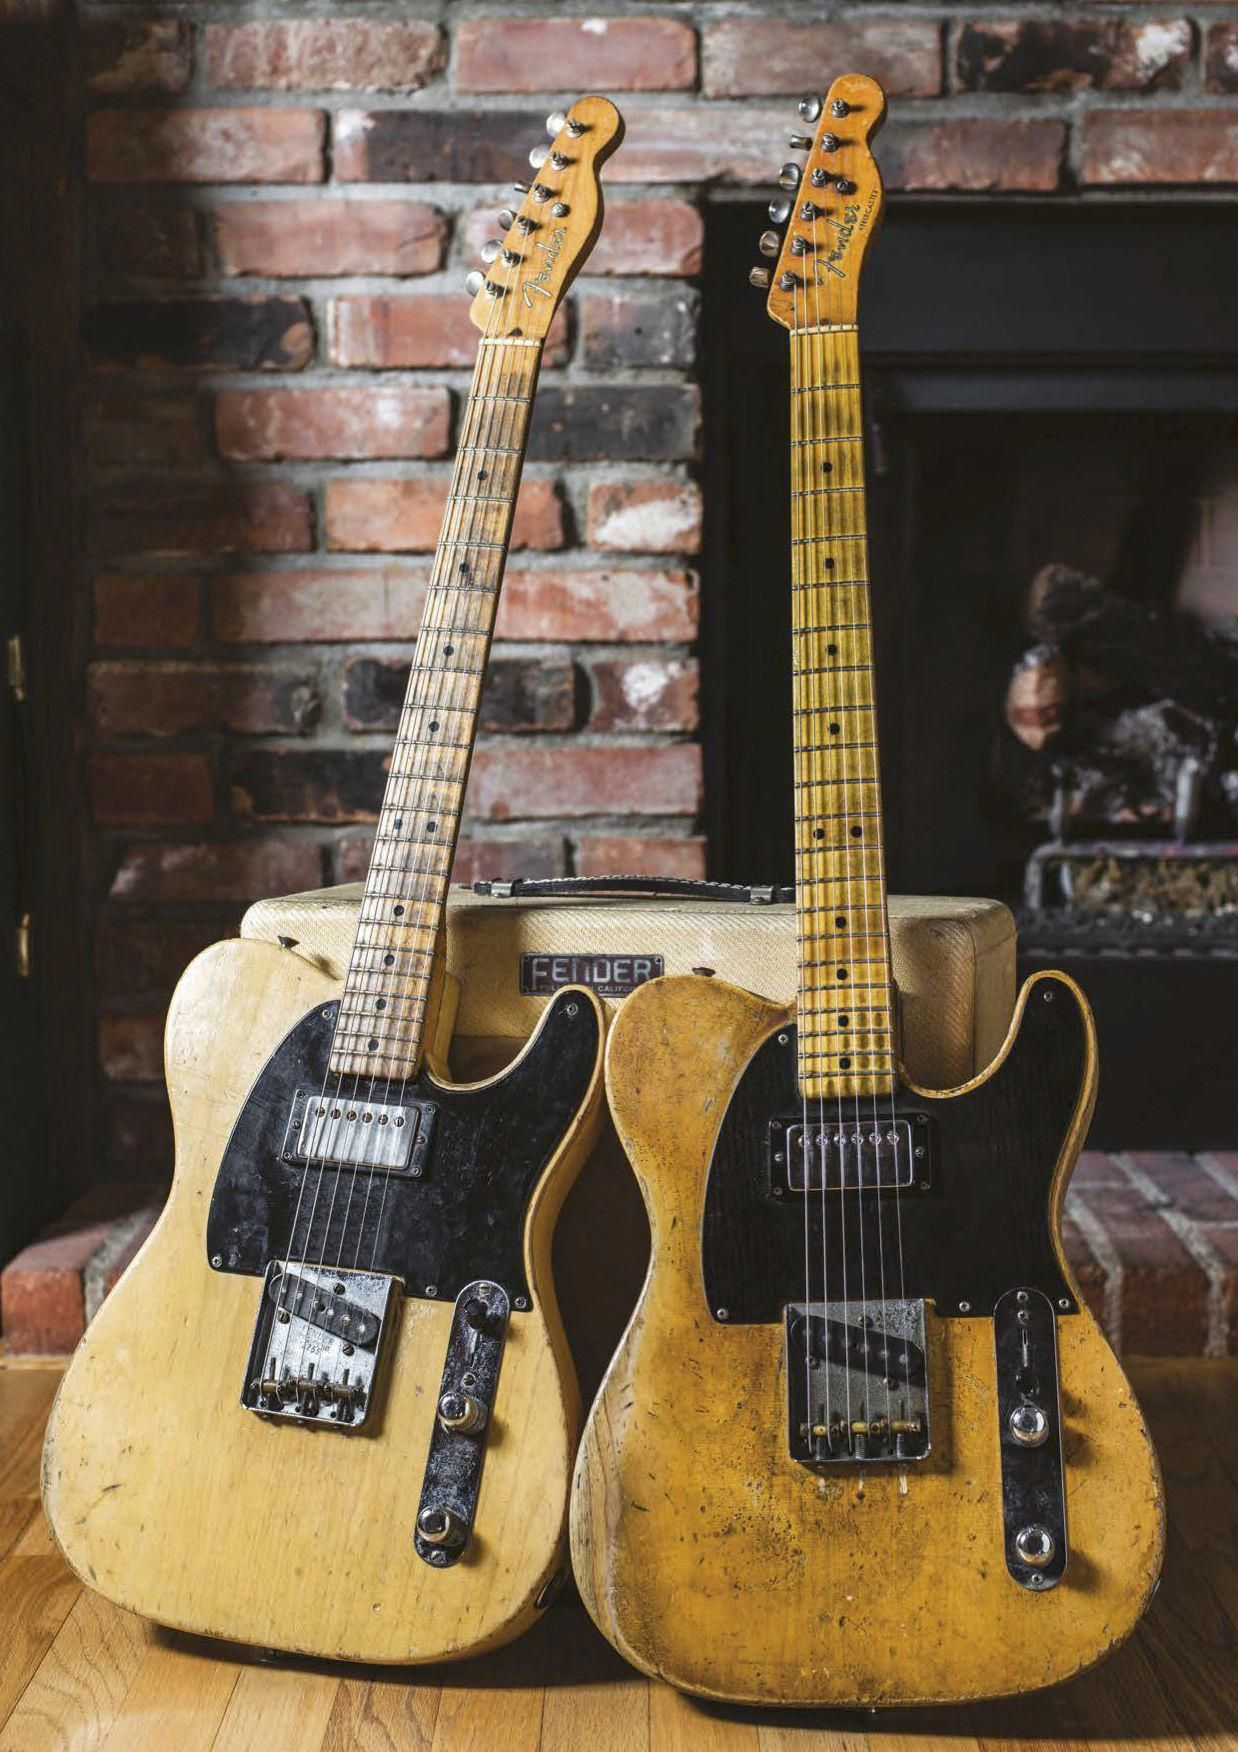 These electric fender guitars are stunning.. #electricfenderguitars #fenderguitars